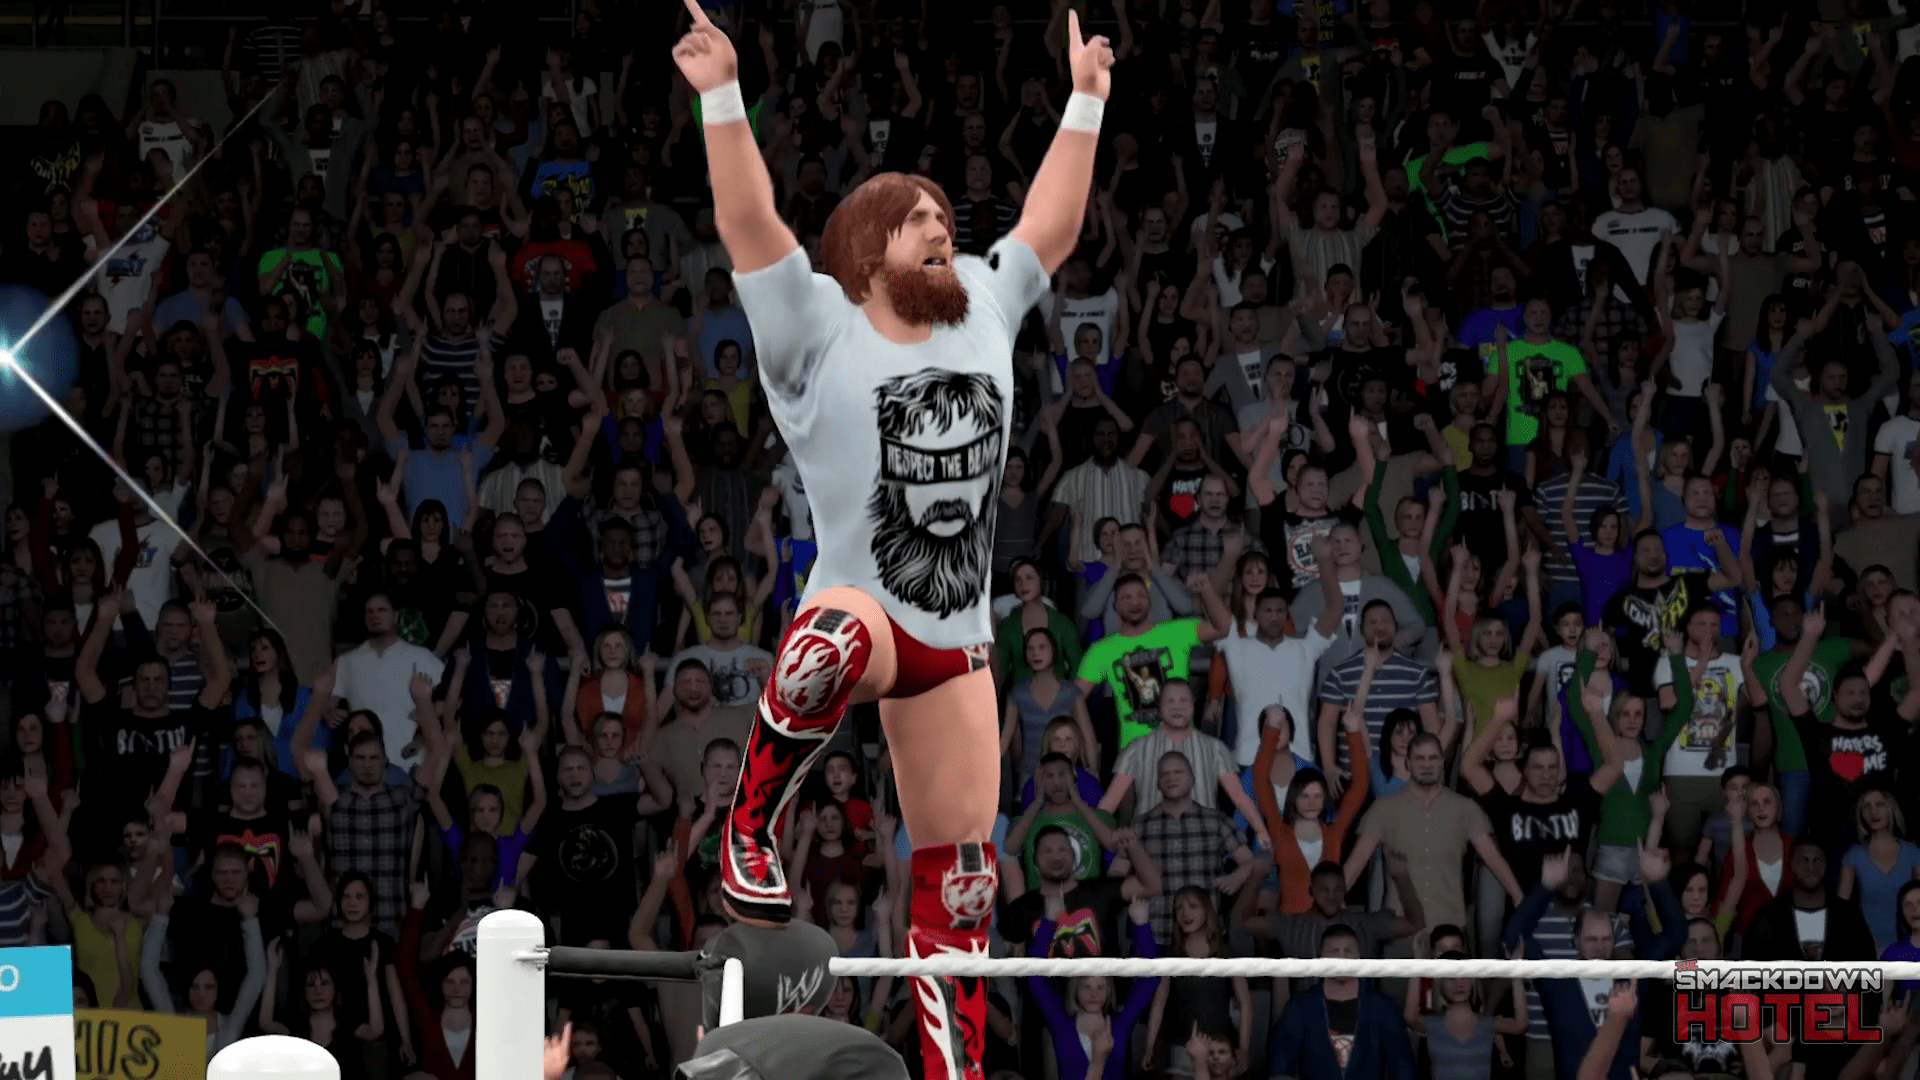 Wwe 2k14 Daniel Bryan Yes Entrance Daniel Bryan - WWE 2K1...